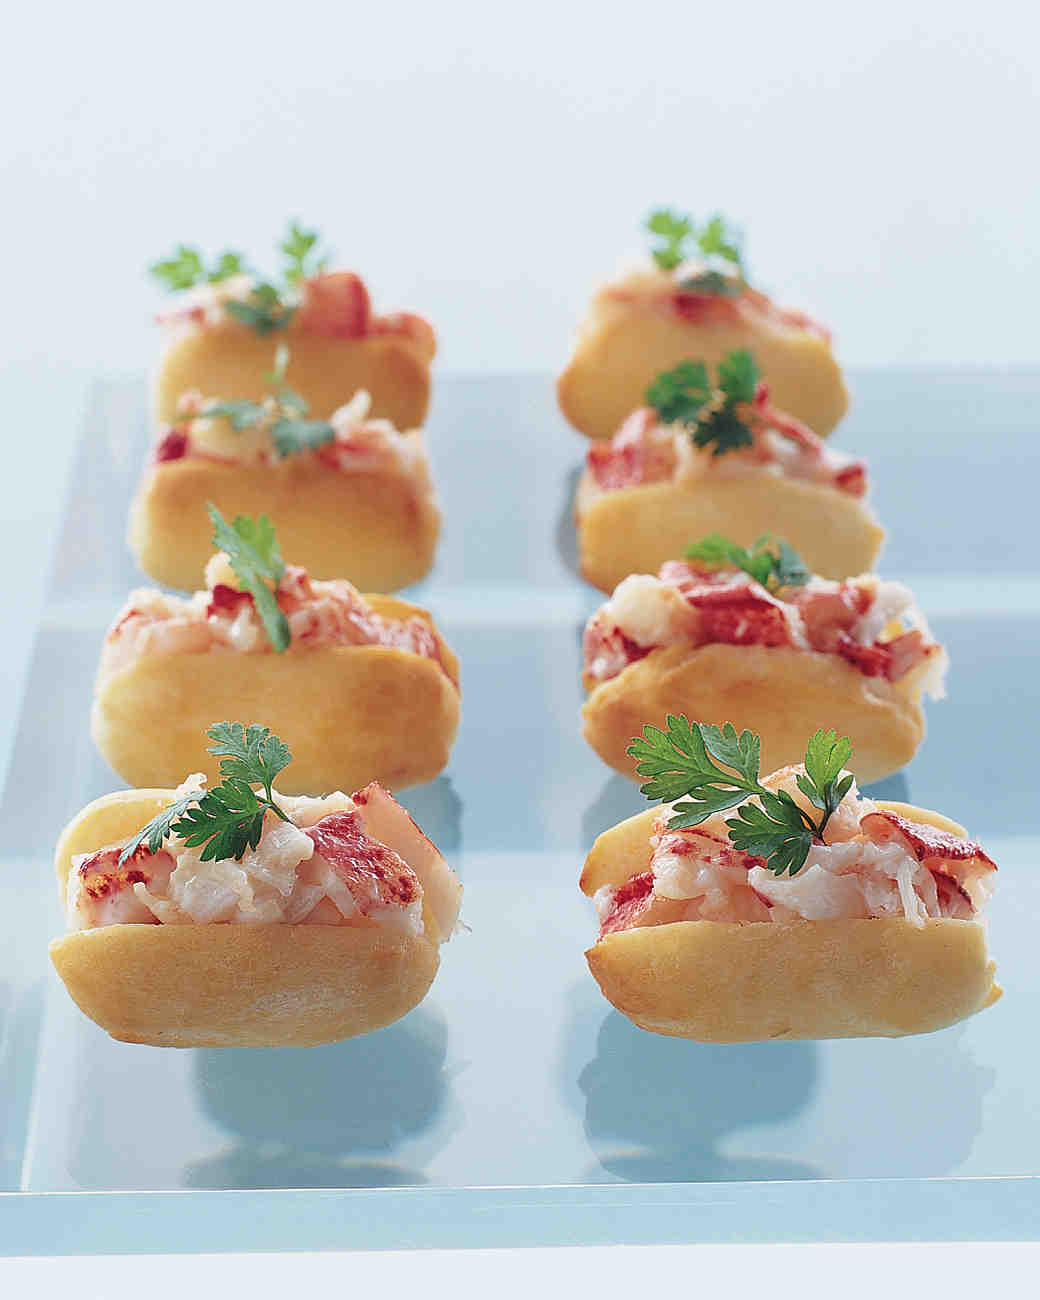 Little Lobster Rolls